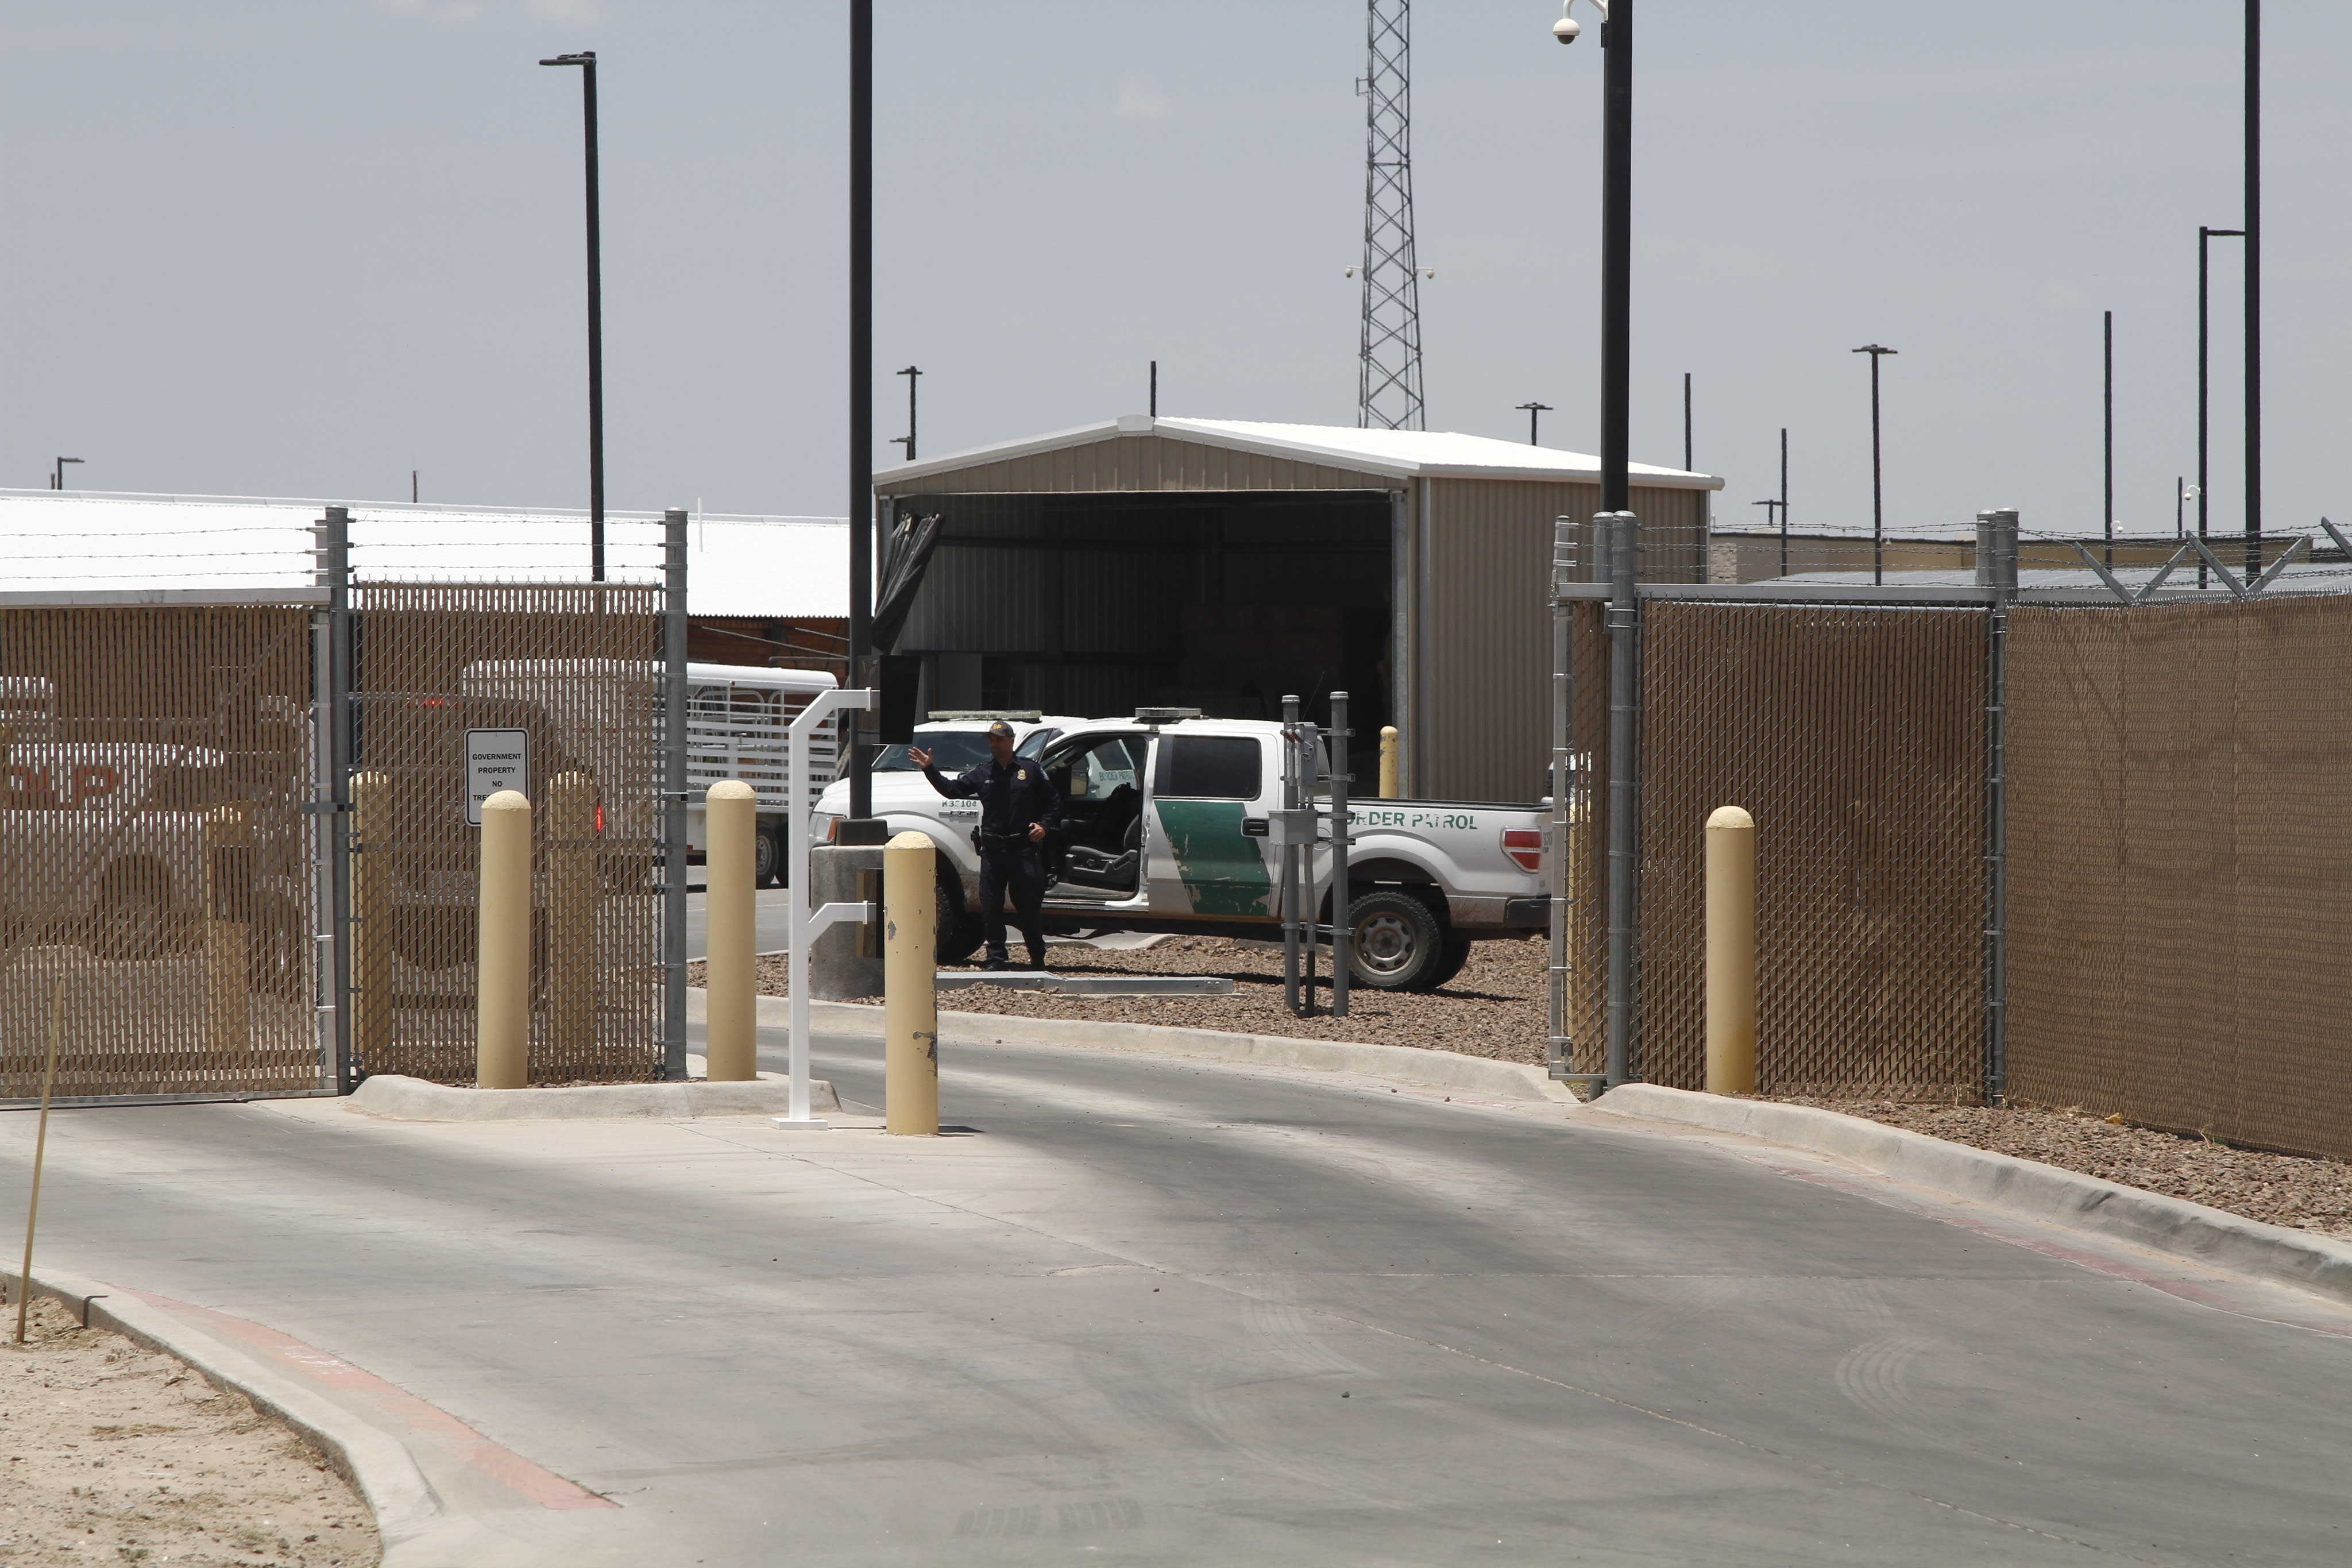 Temporary Restraining Order Sought To Free Children Held at Border